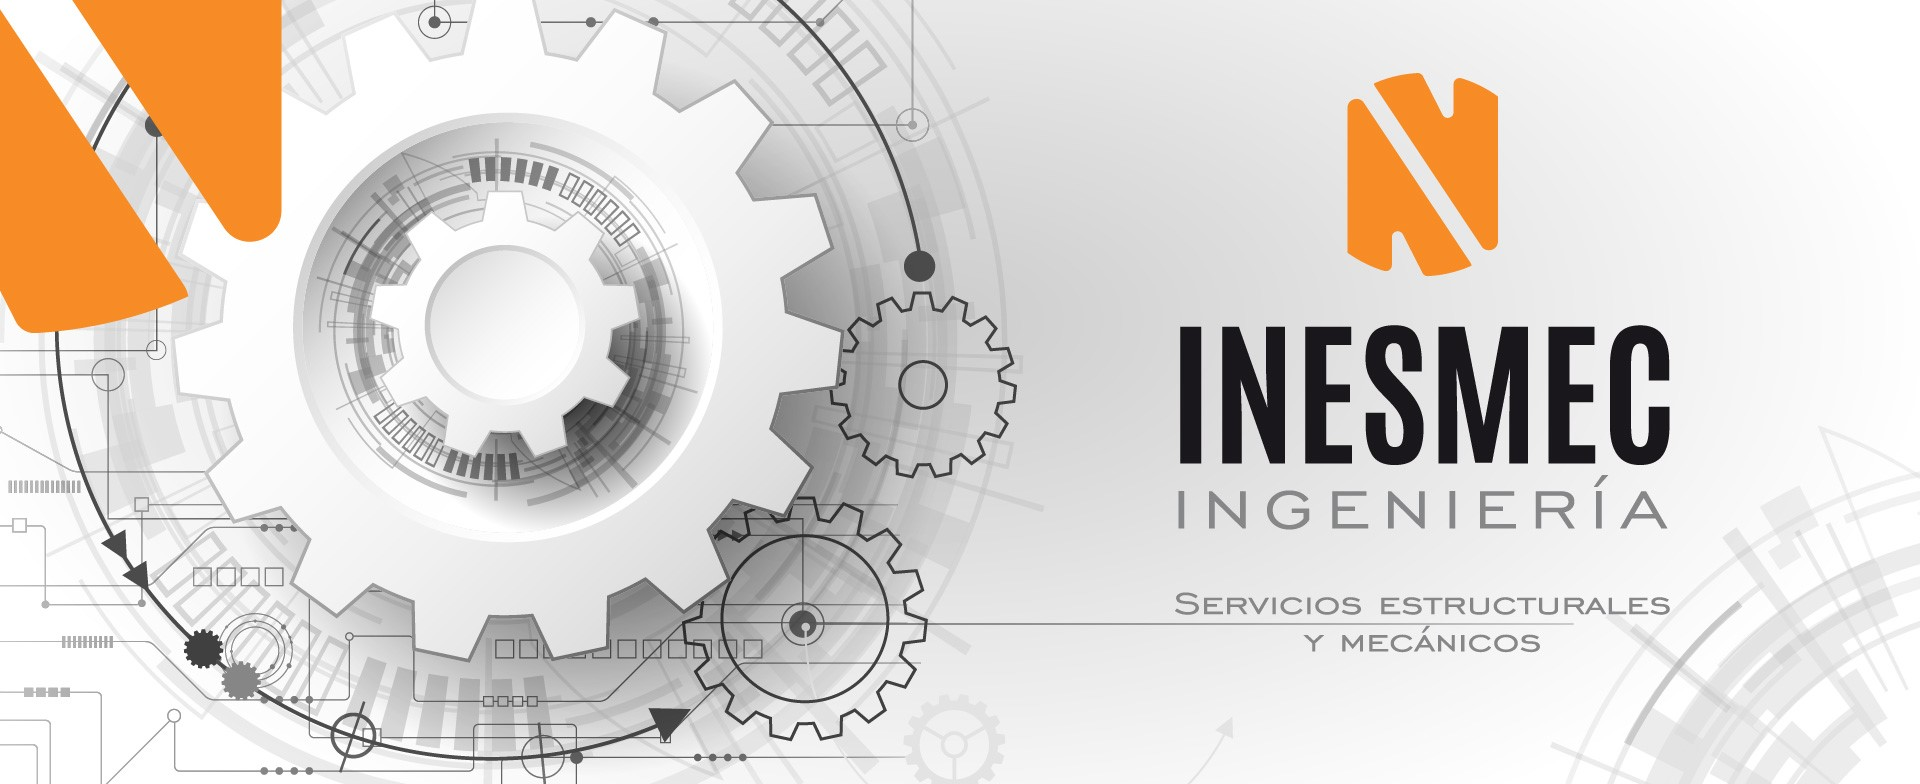 Structural and mechanical engineering services | Inesmec